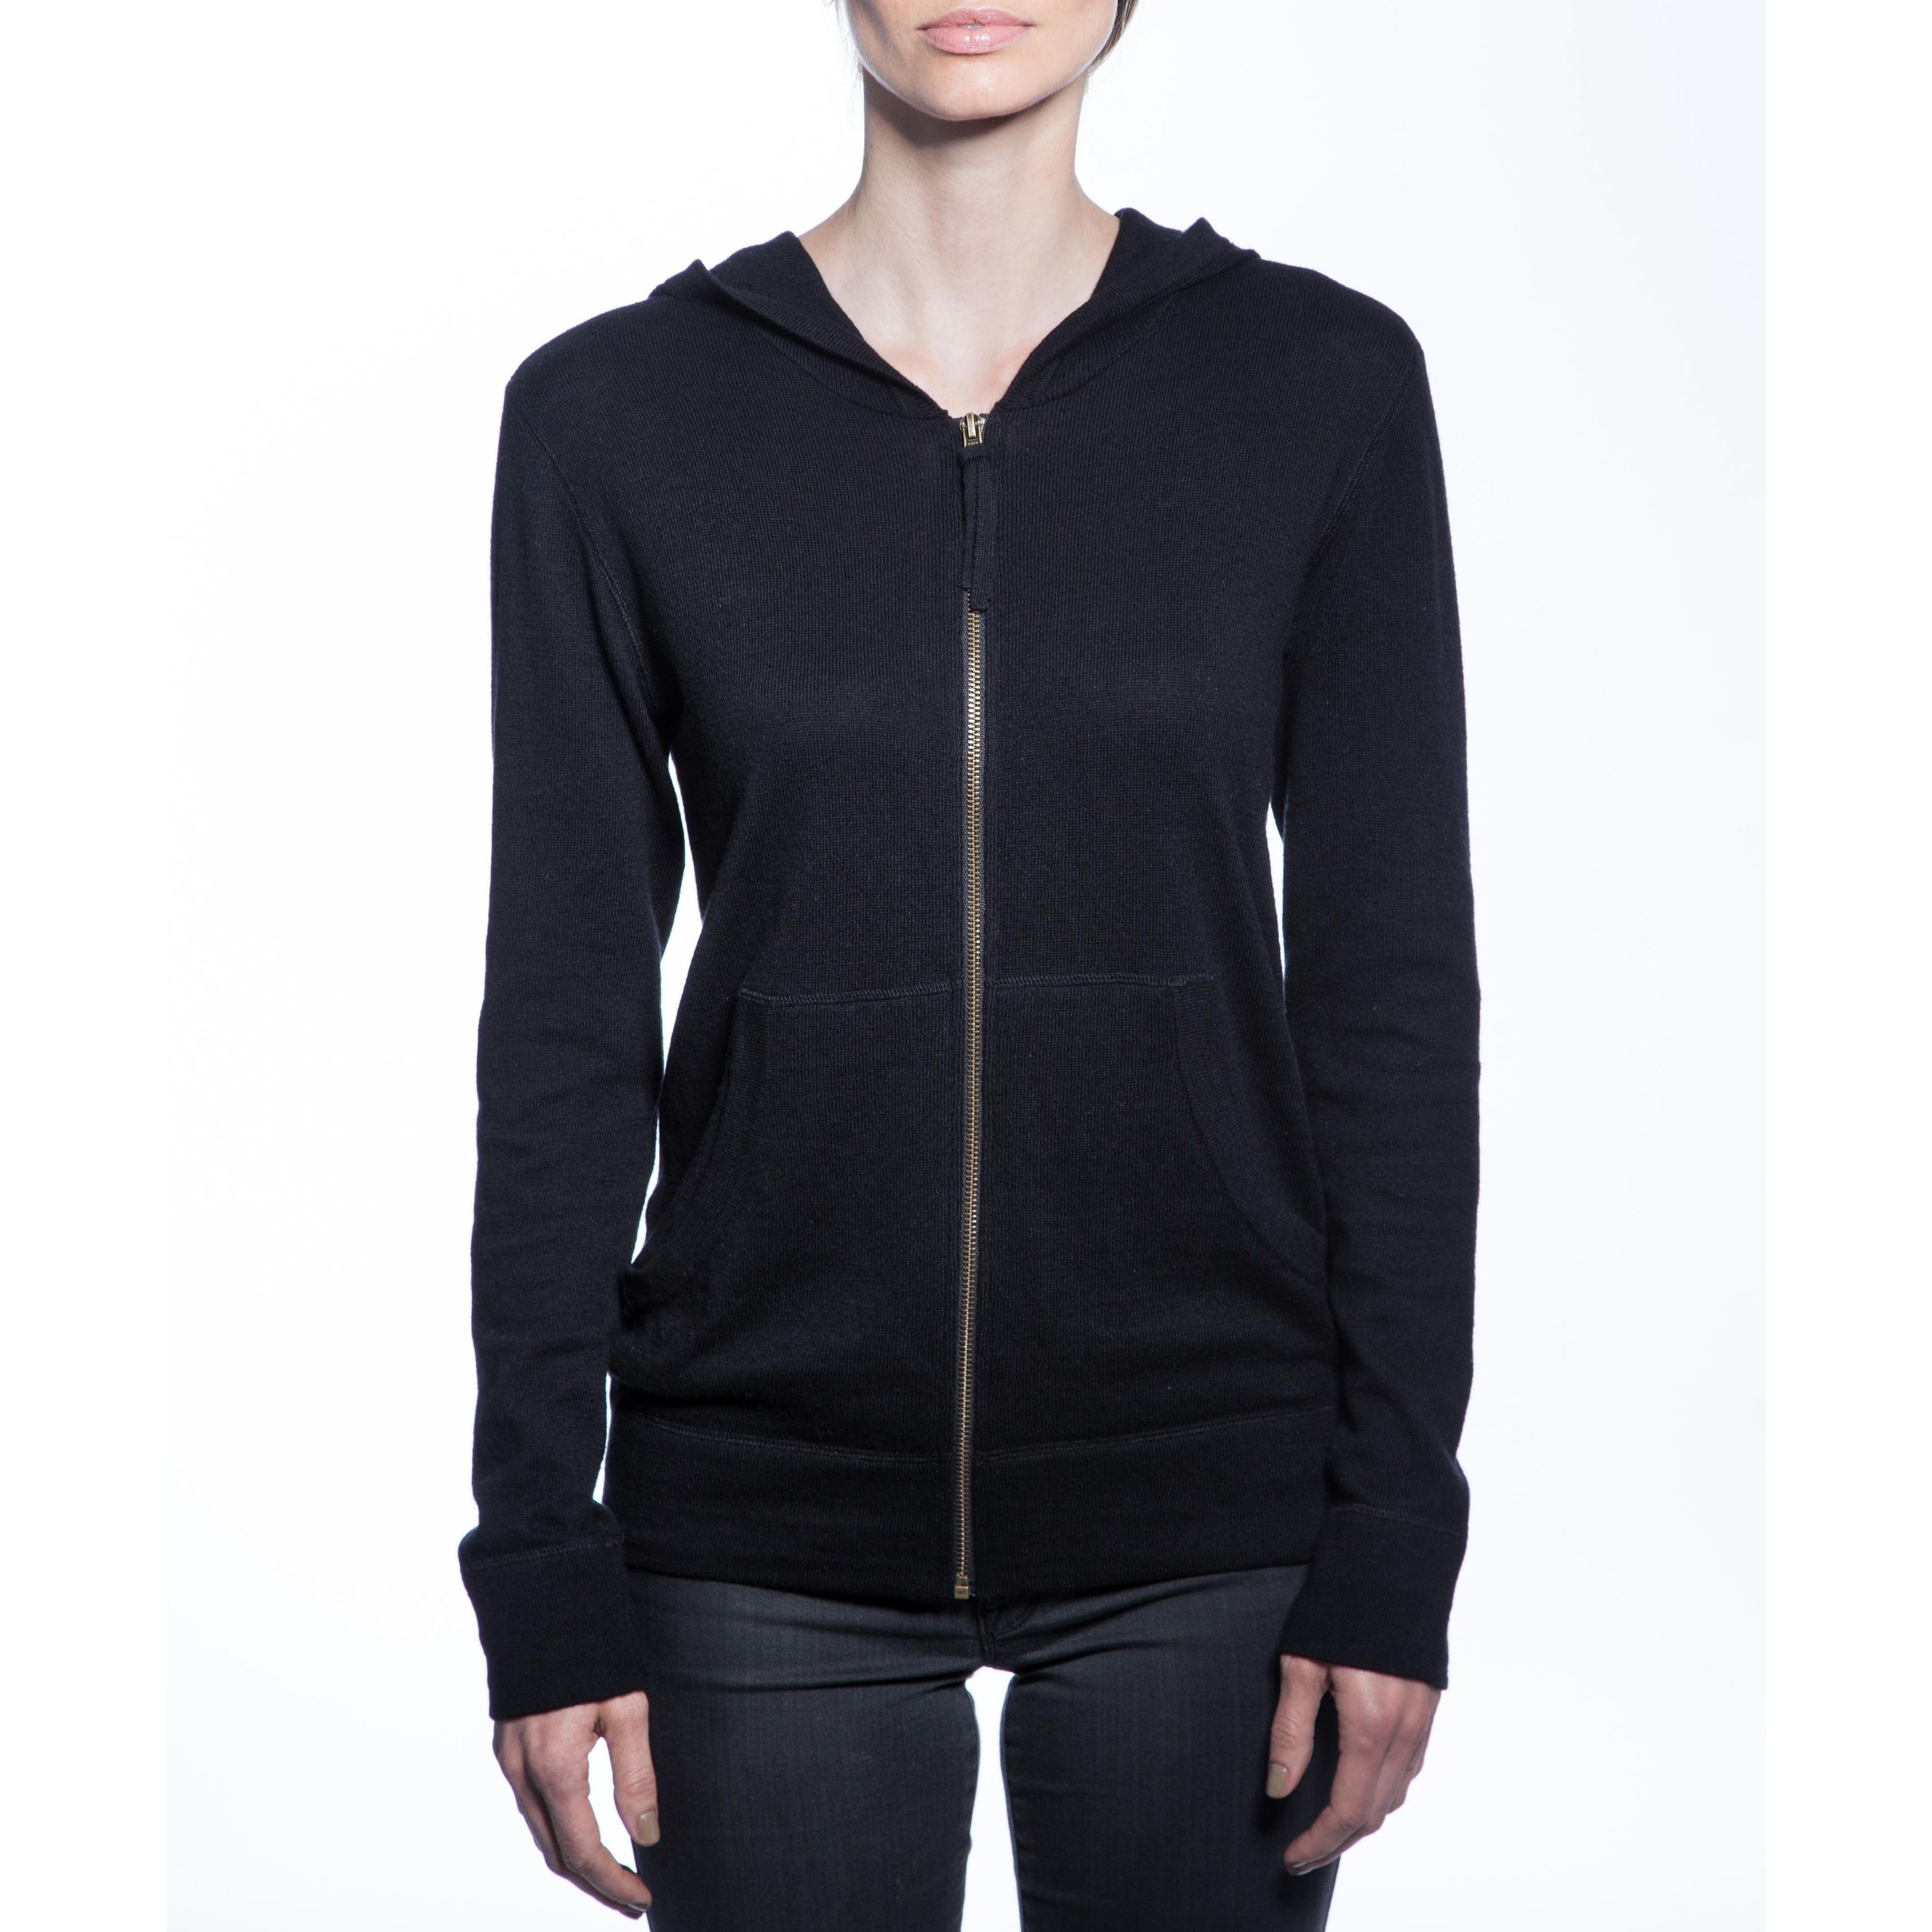 Women's Blend Zip-up Hoodie | Products | Pinterest | Cashmere and ...